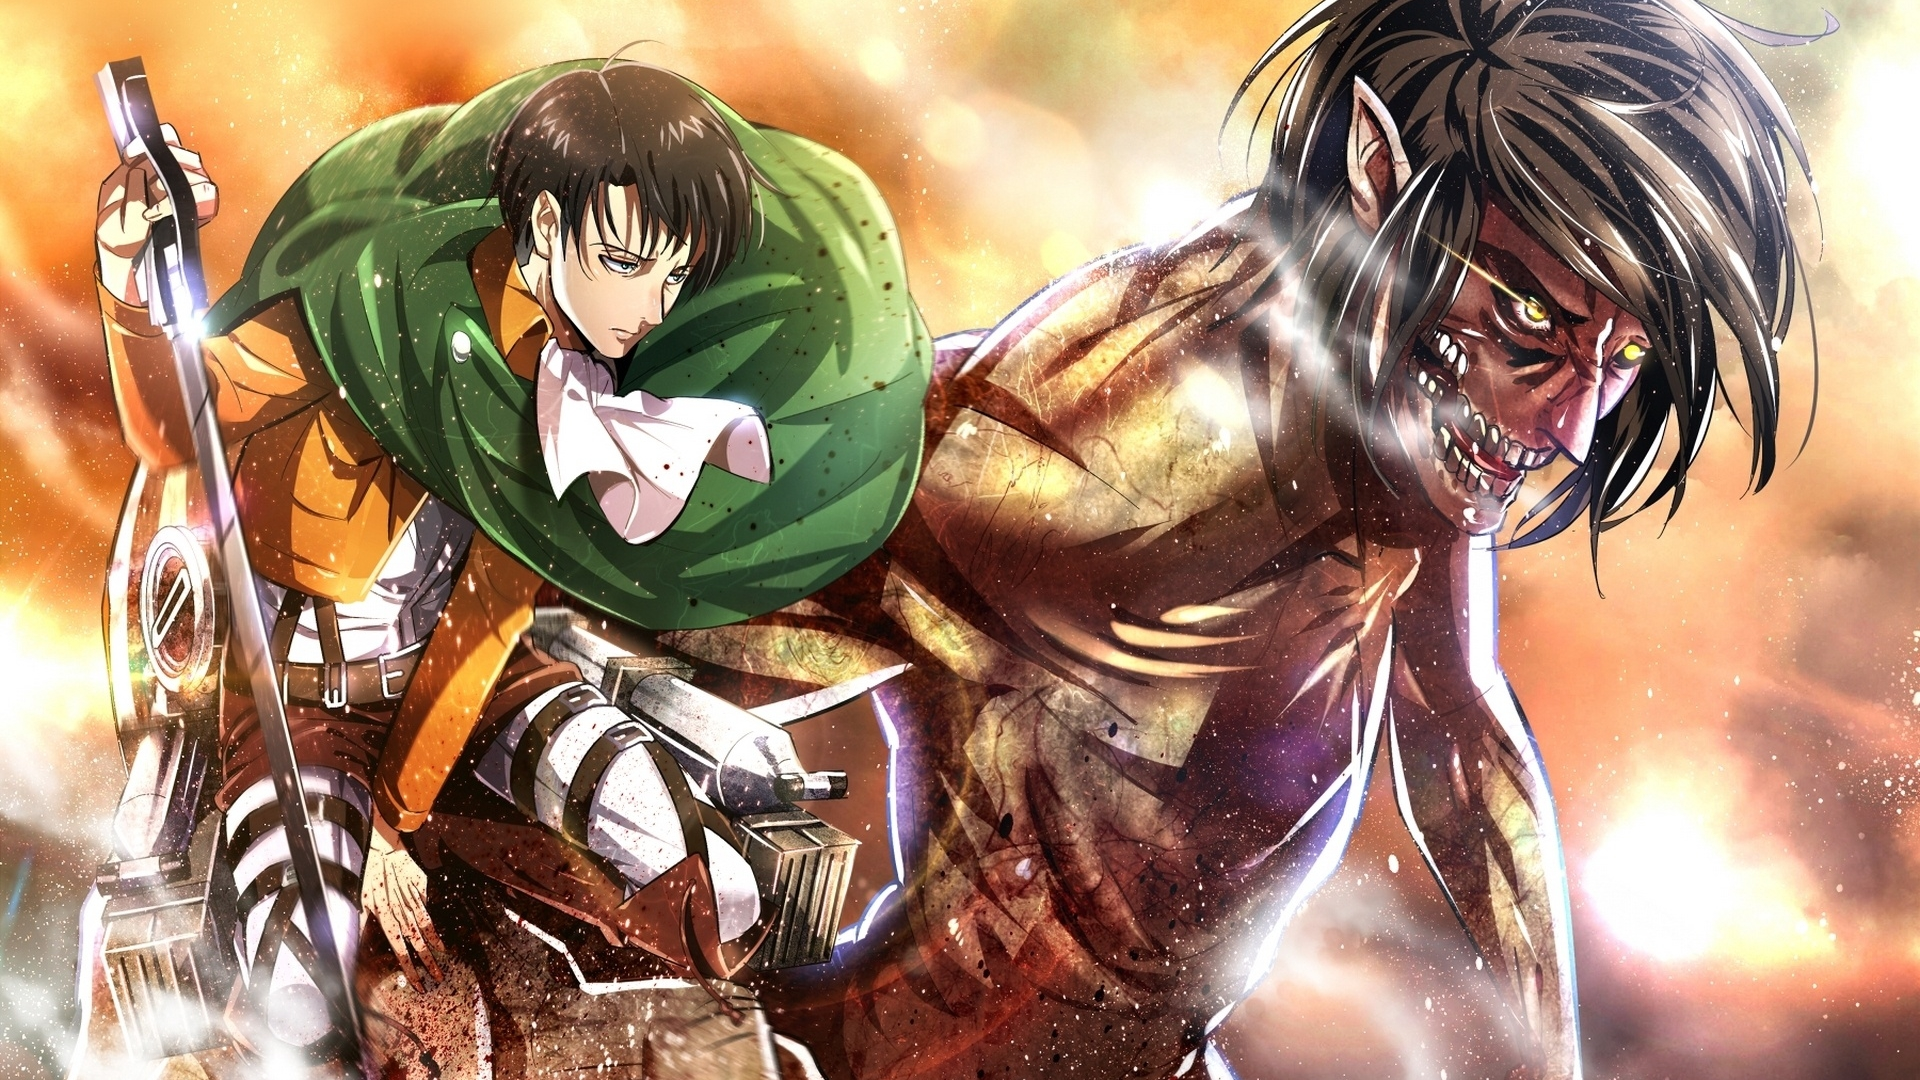 Attack On Titan Wallpaper Hd Levi 1920x1080 Download Hd Wallpaper Wallpapertip